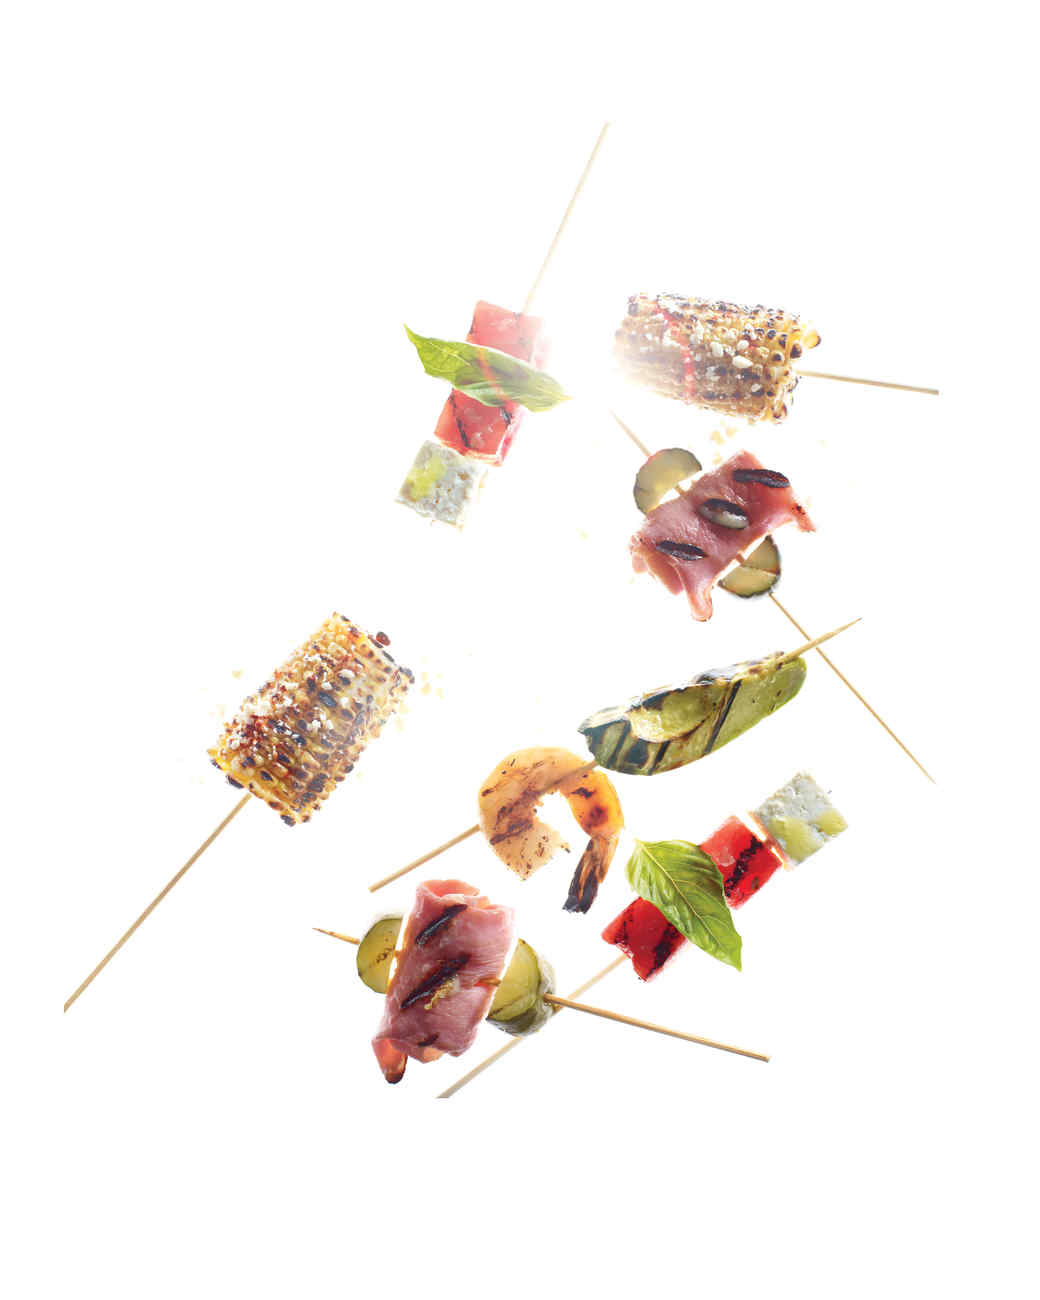 Corn and Cotija Cheese Skewers